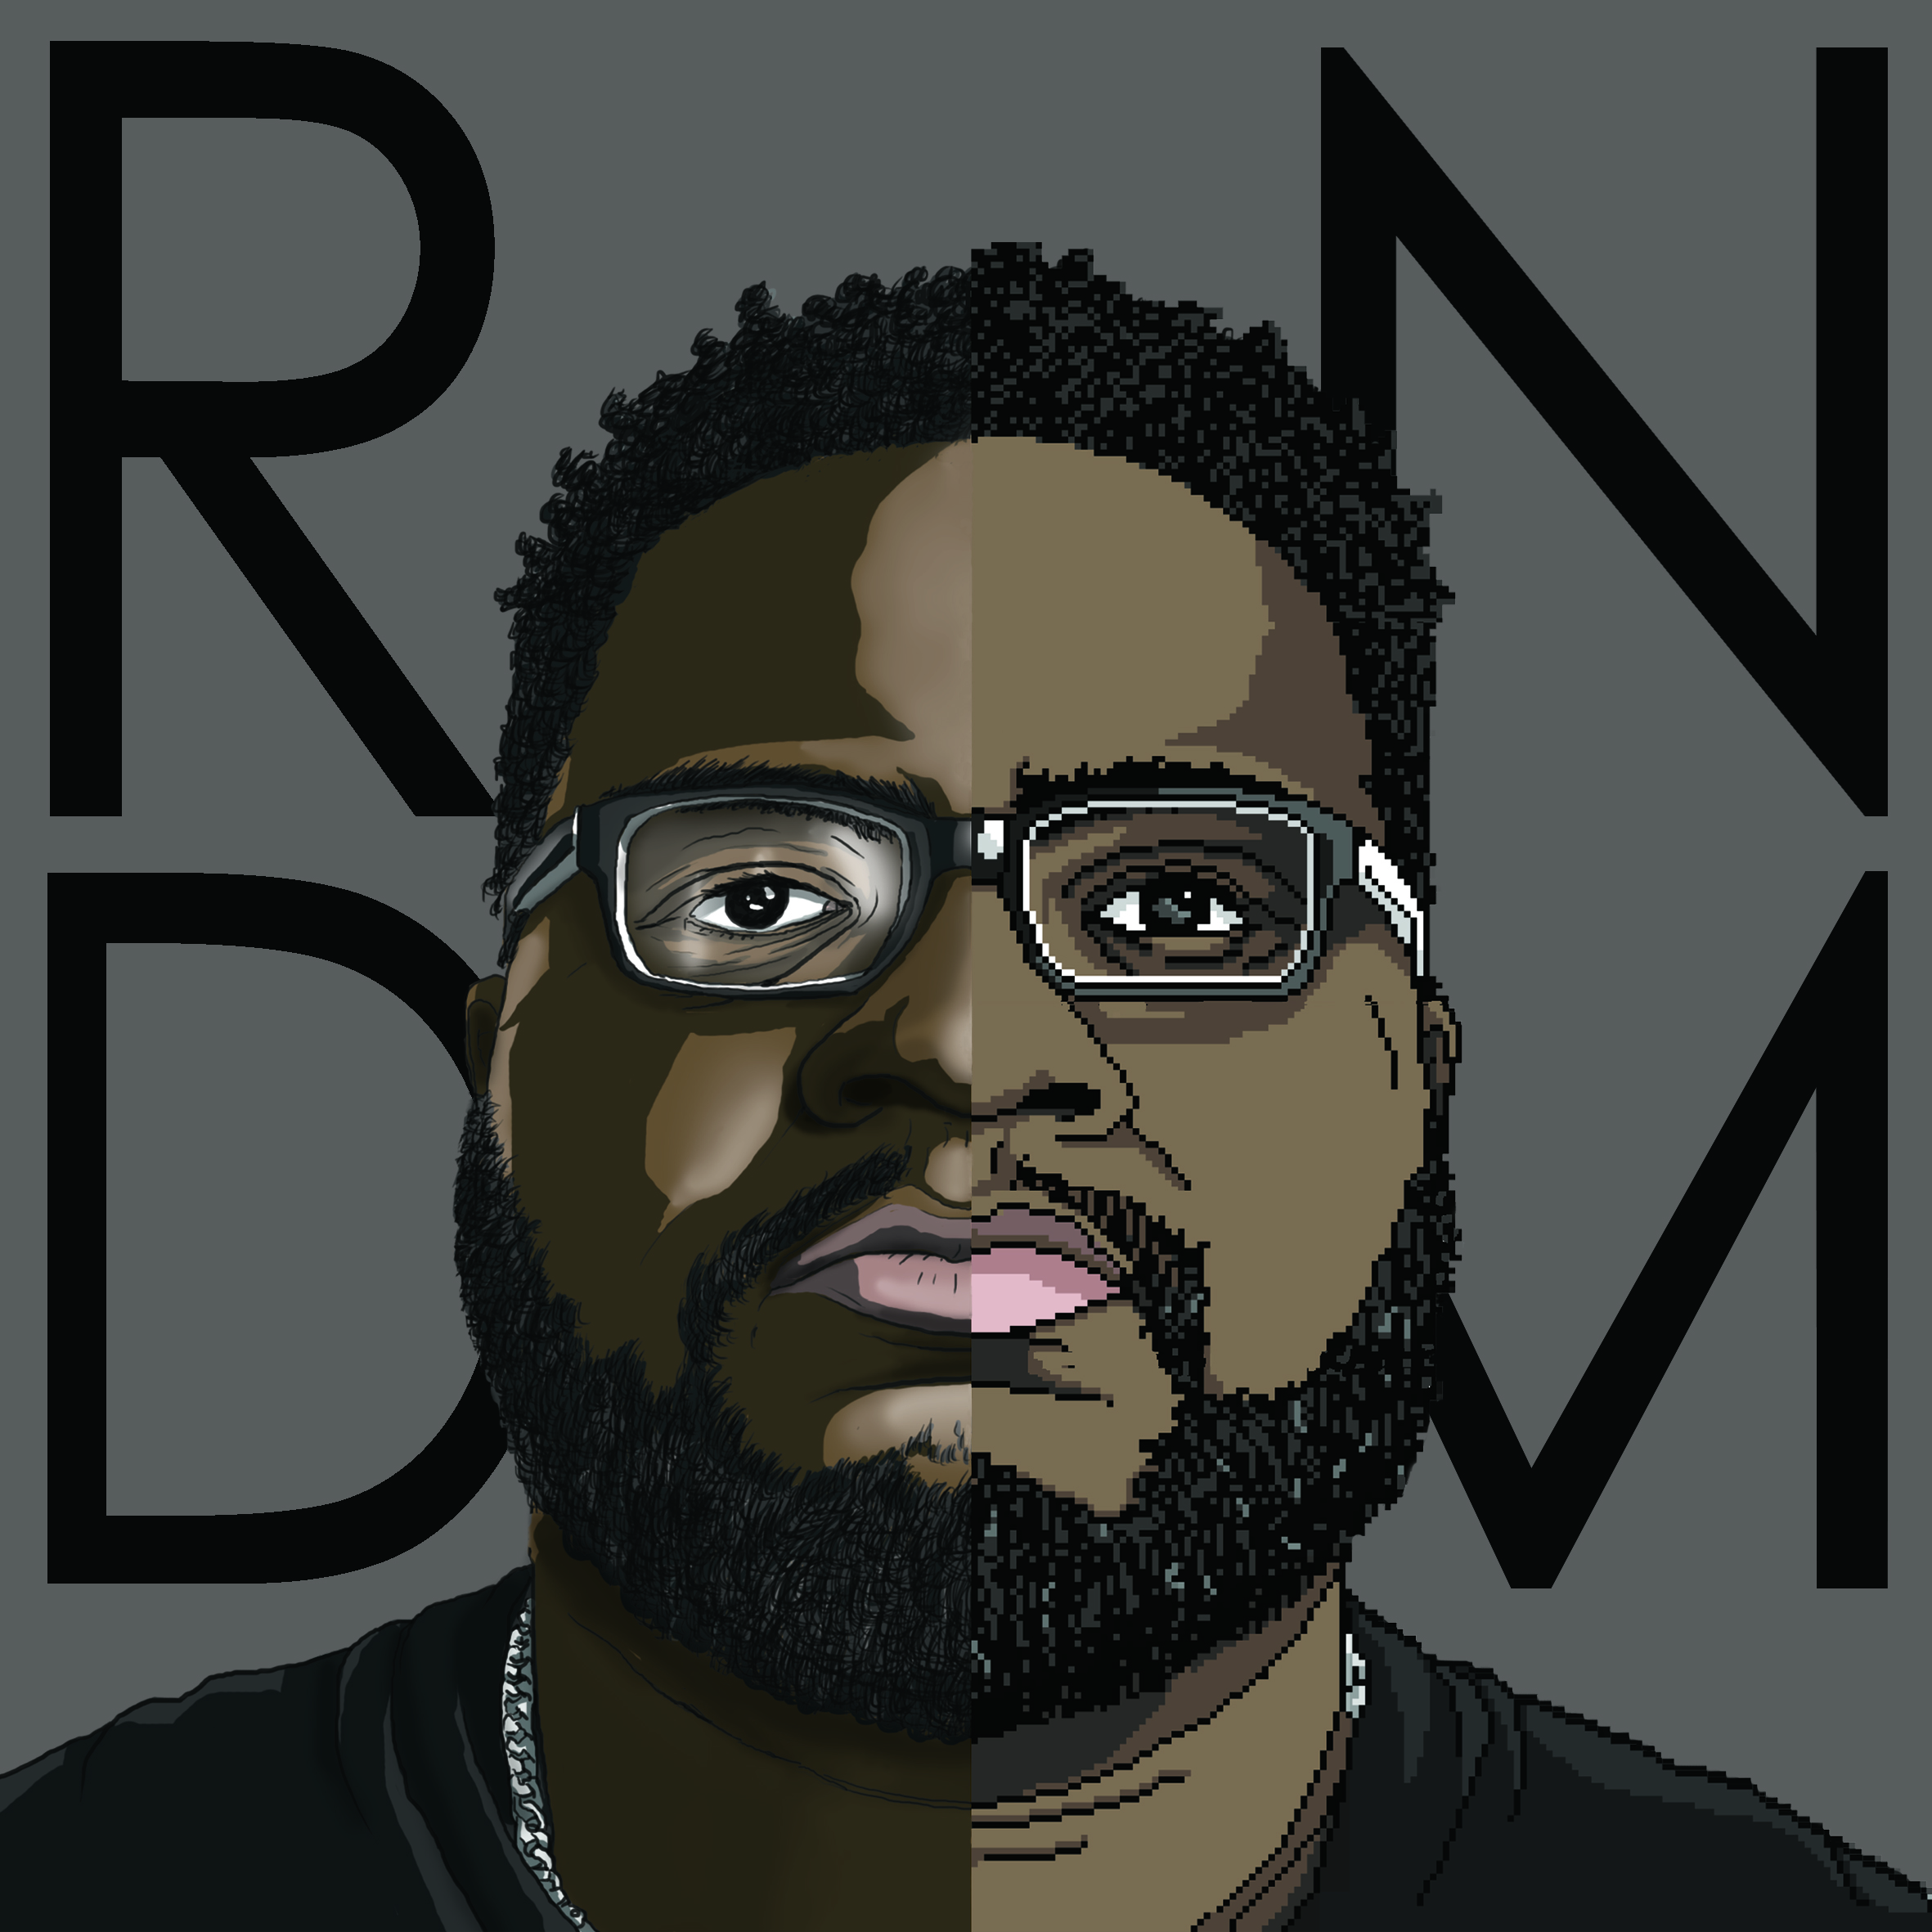 Album cover for RNDM, The version Kickstarter backers will get who pledged enough to get their exclusive copy.